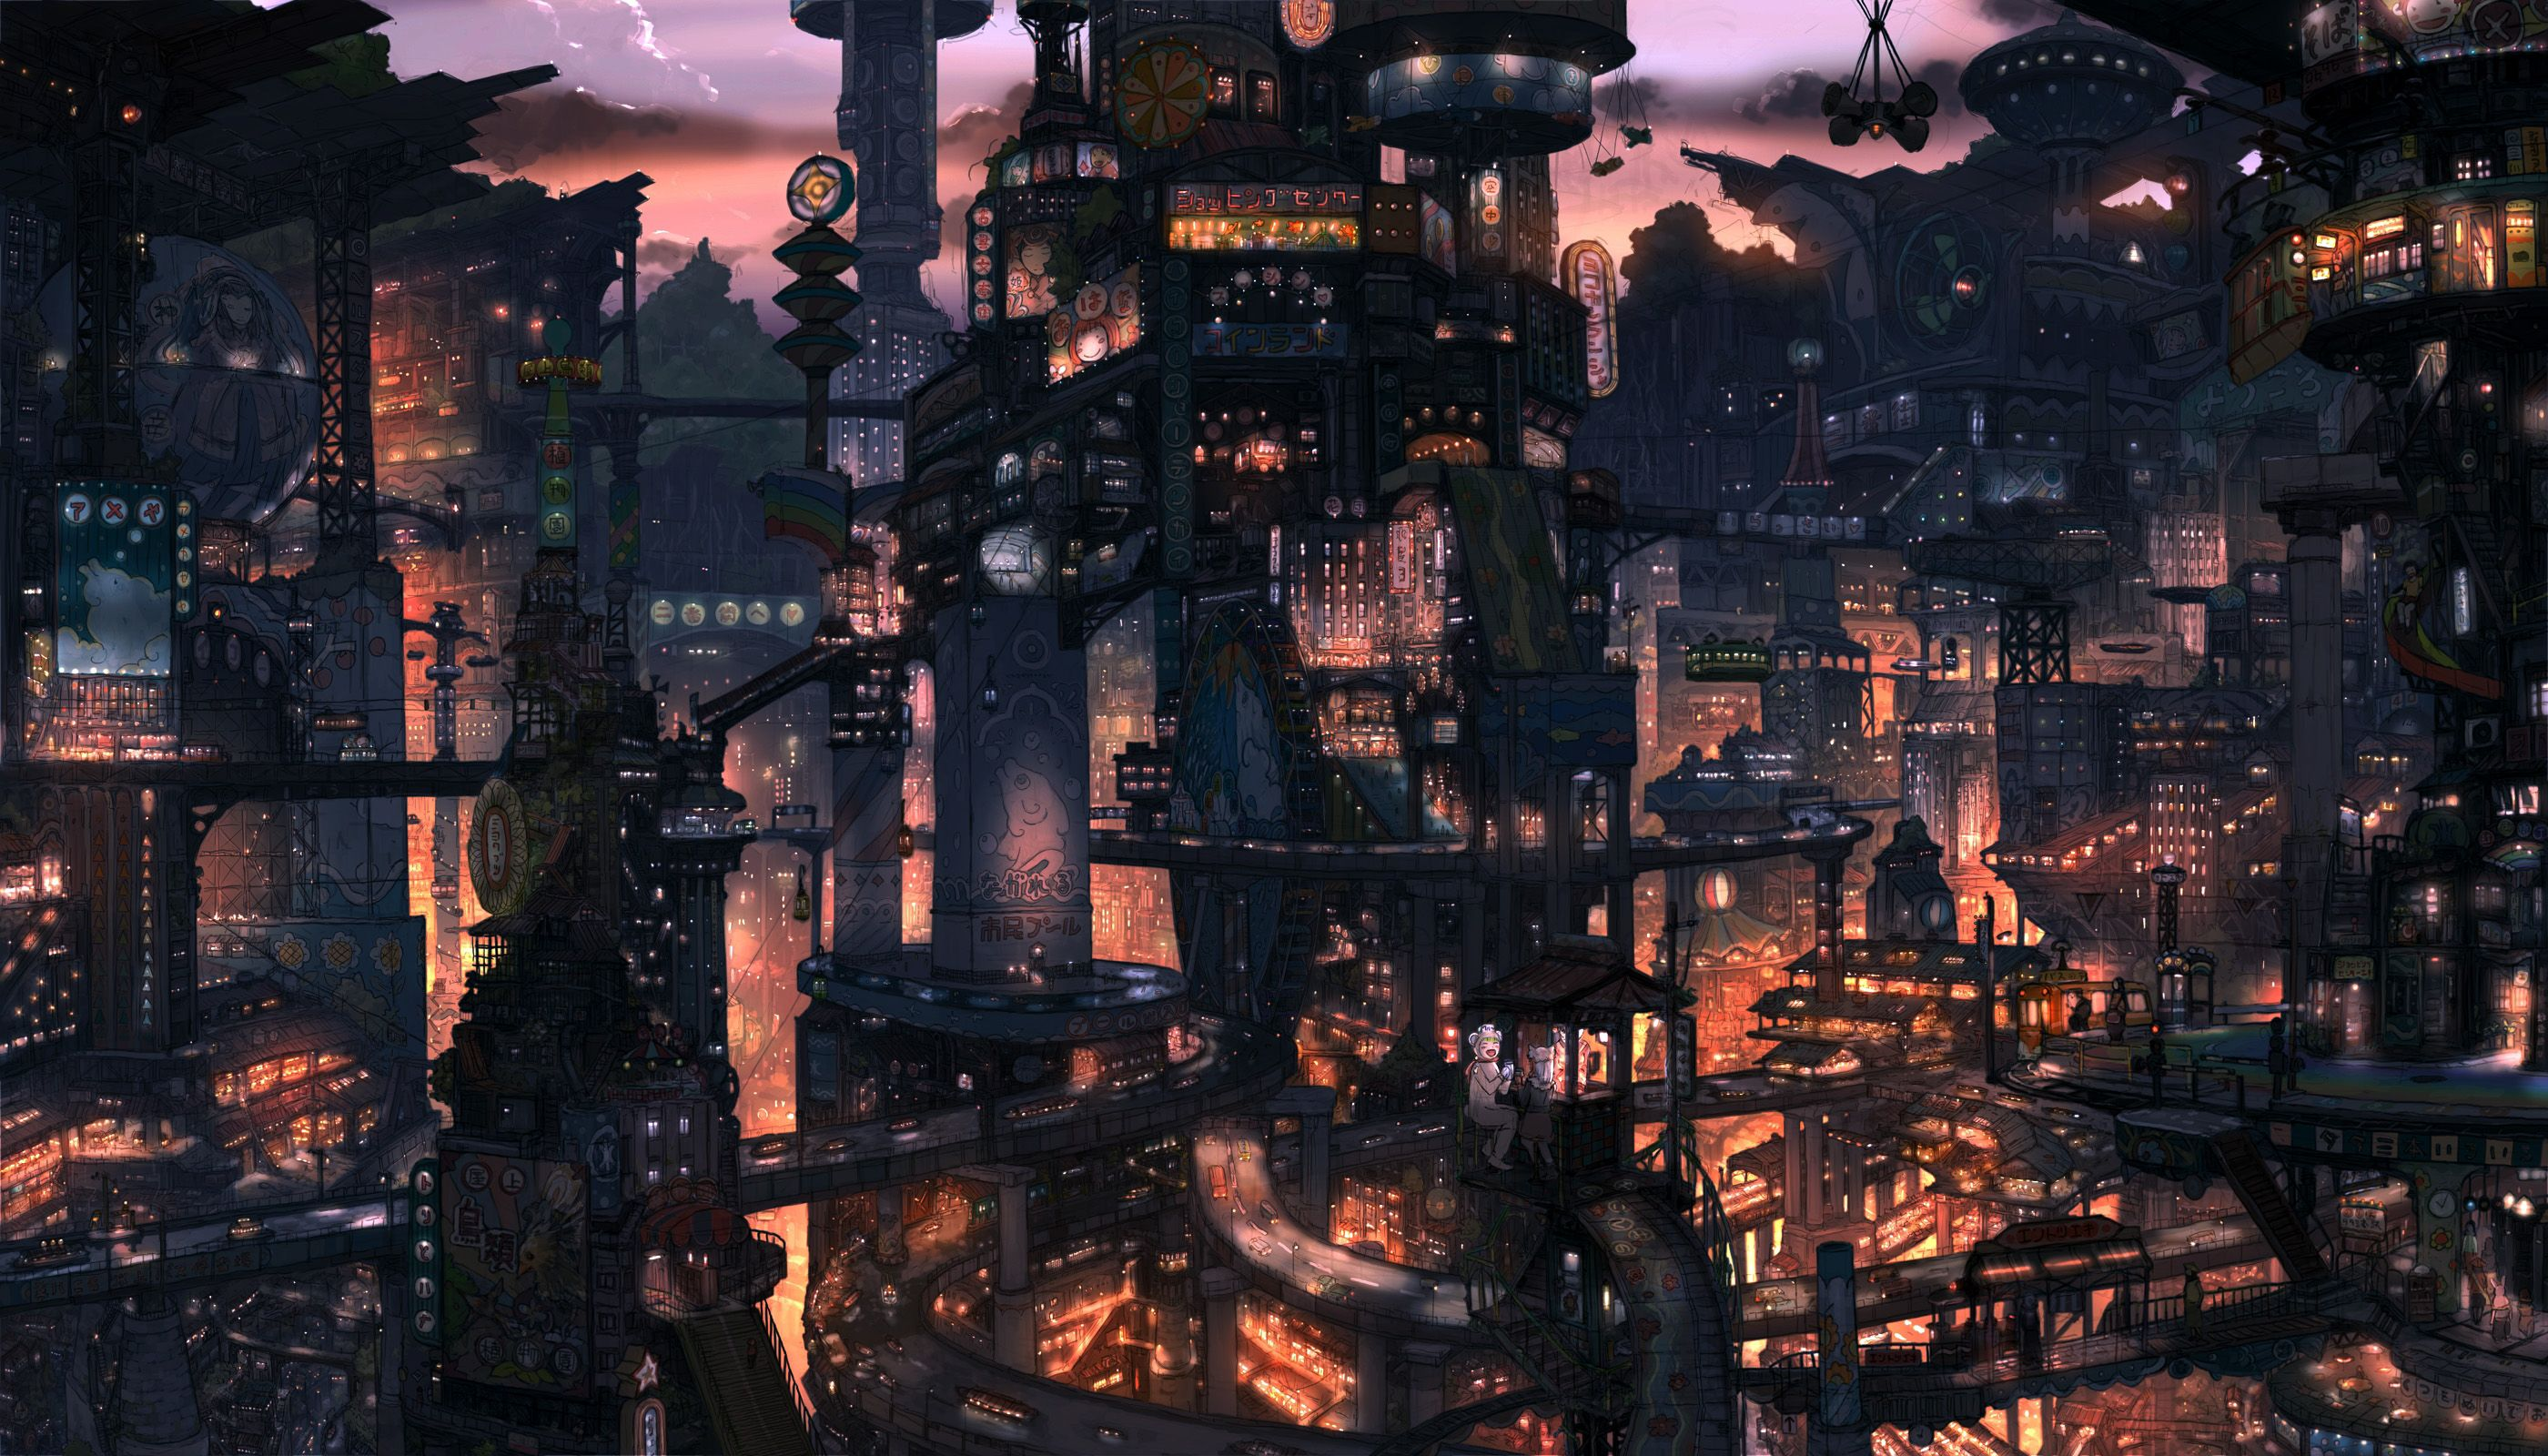 2800x1600 cityscapes, buildings, surreal, imperial boy, digital art :: Wallpapers